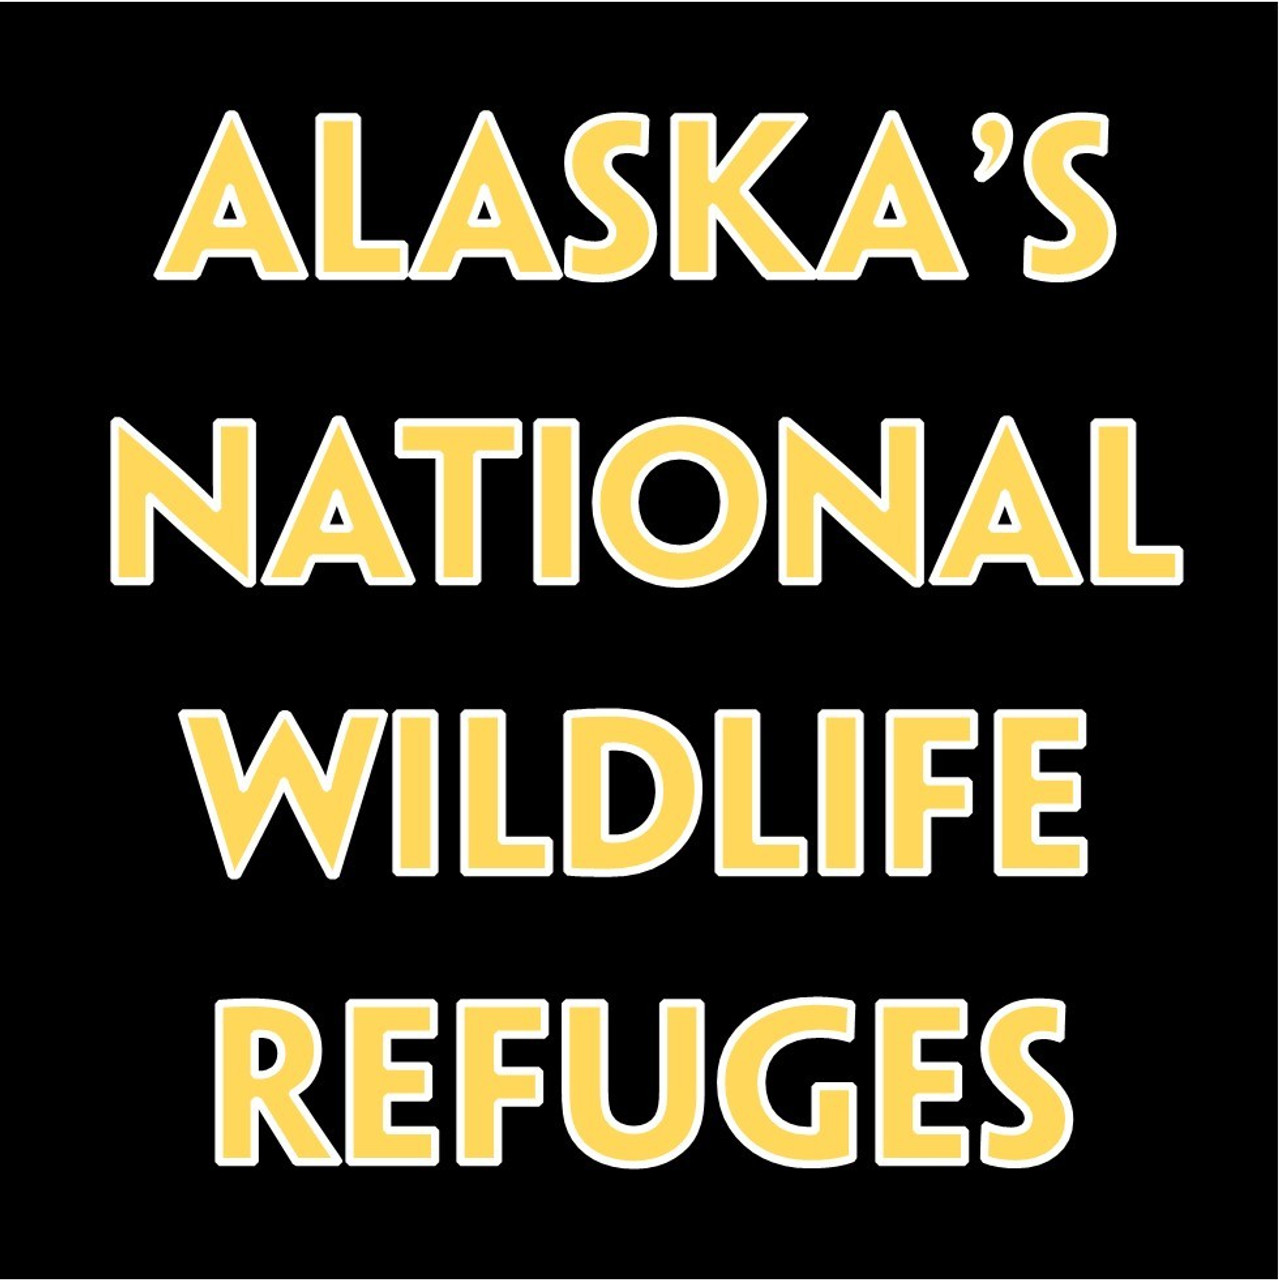 National Wildlife Refuges